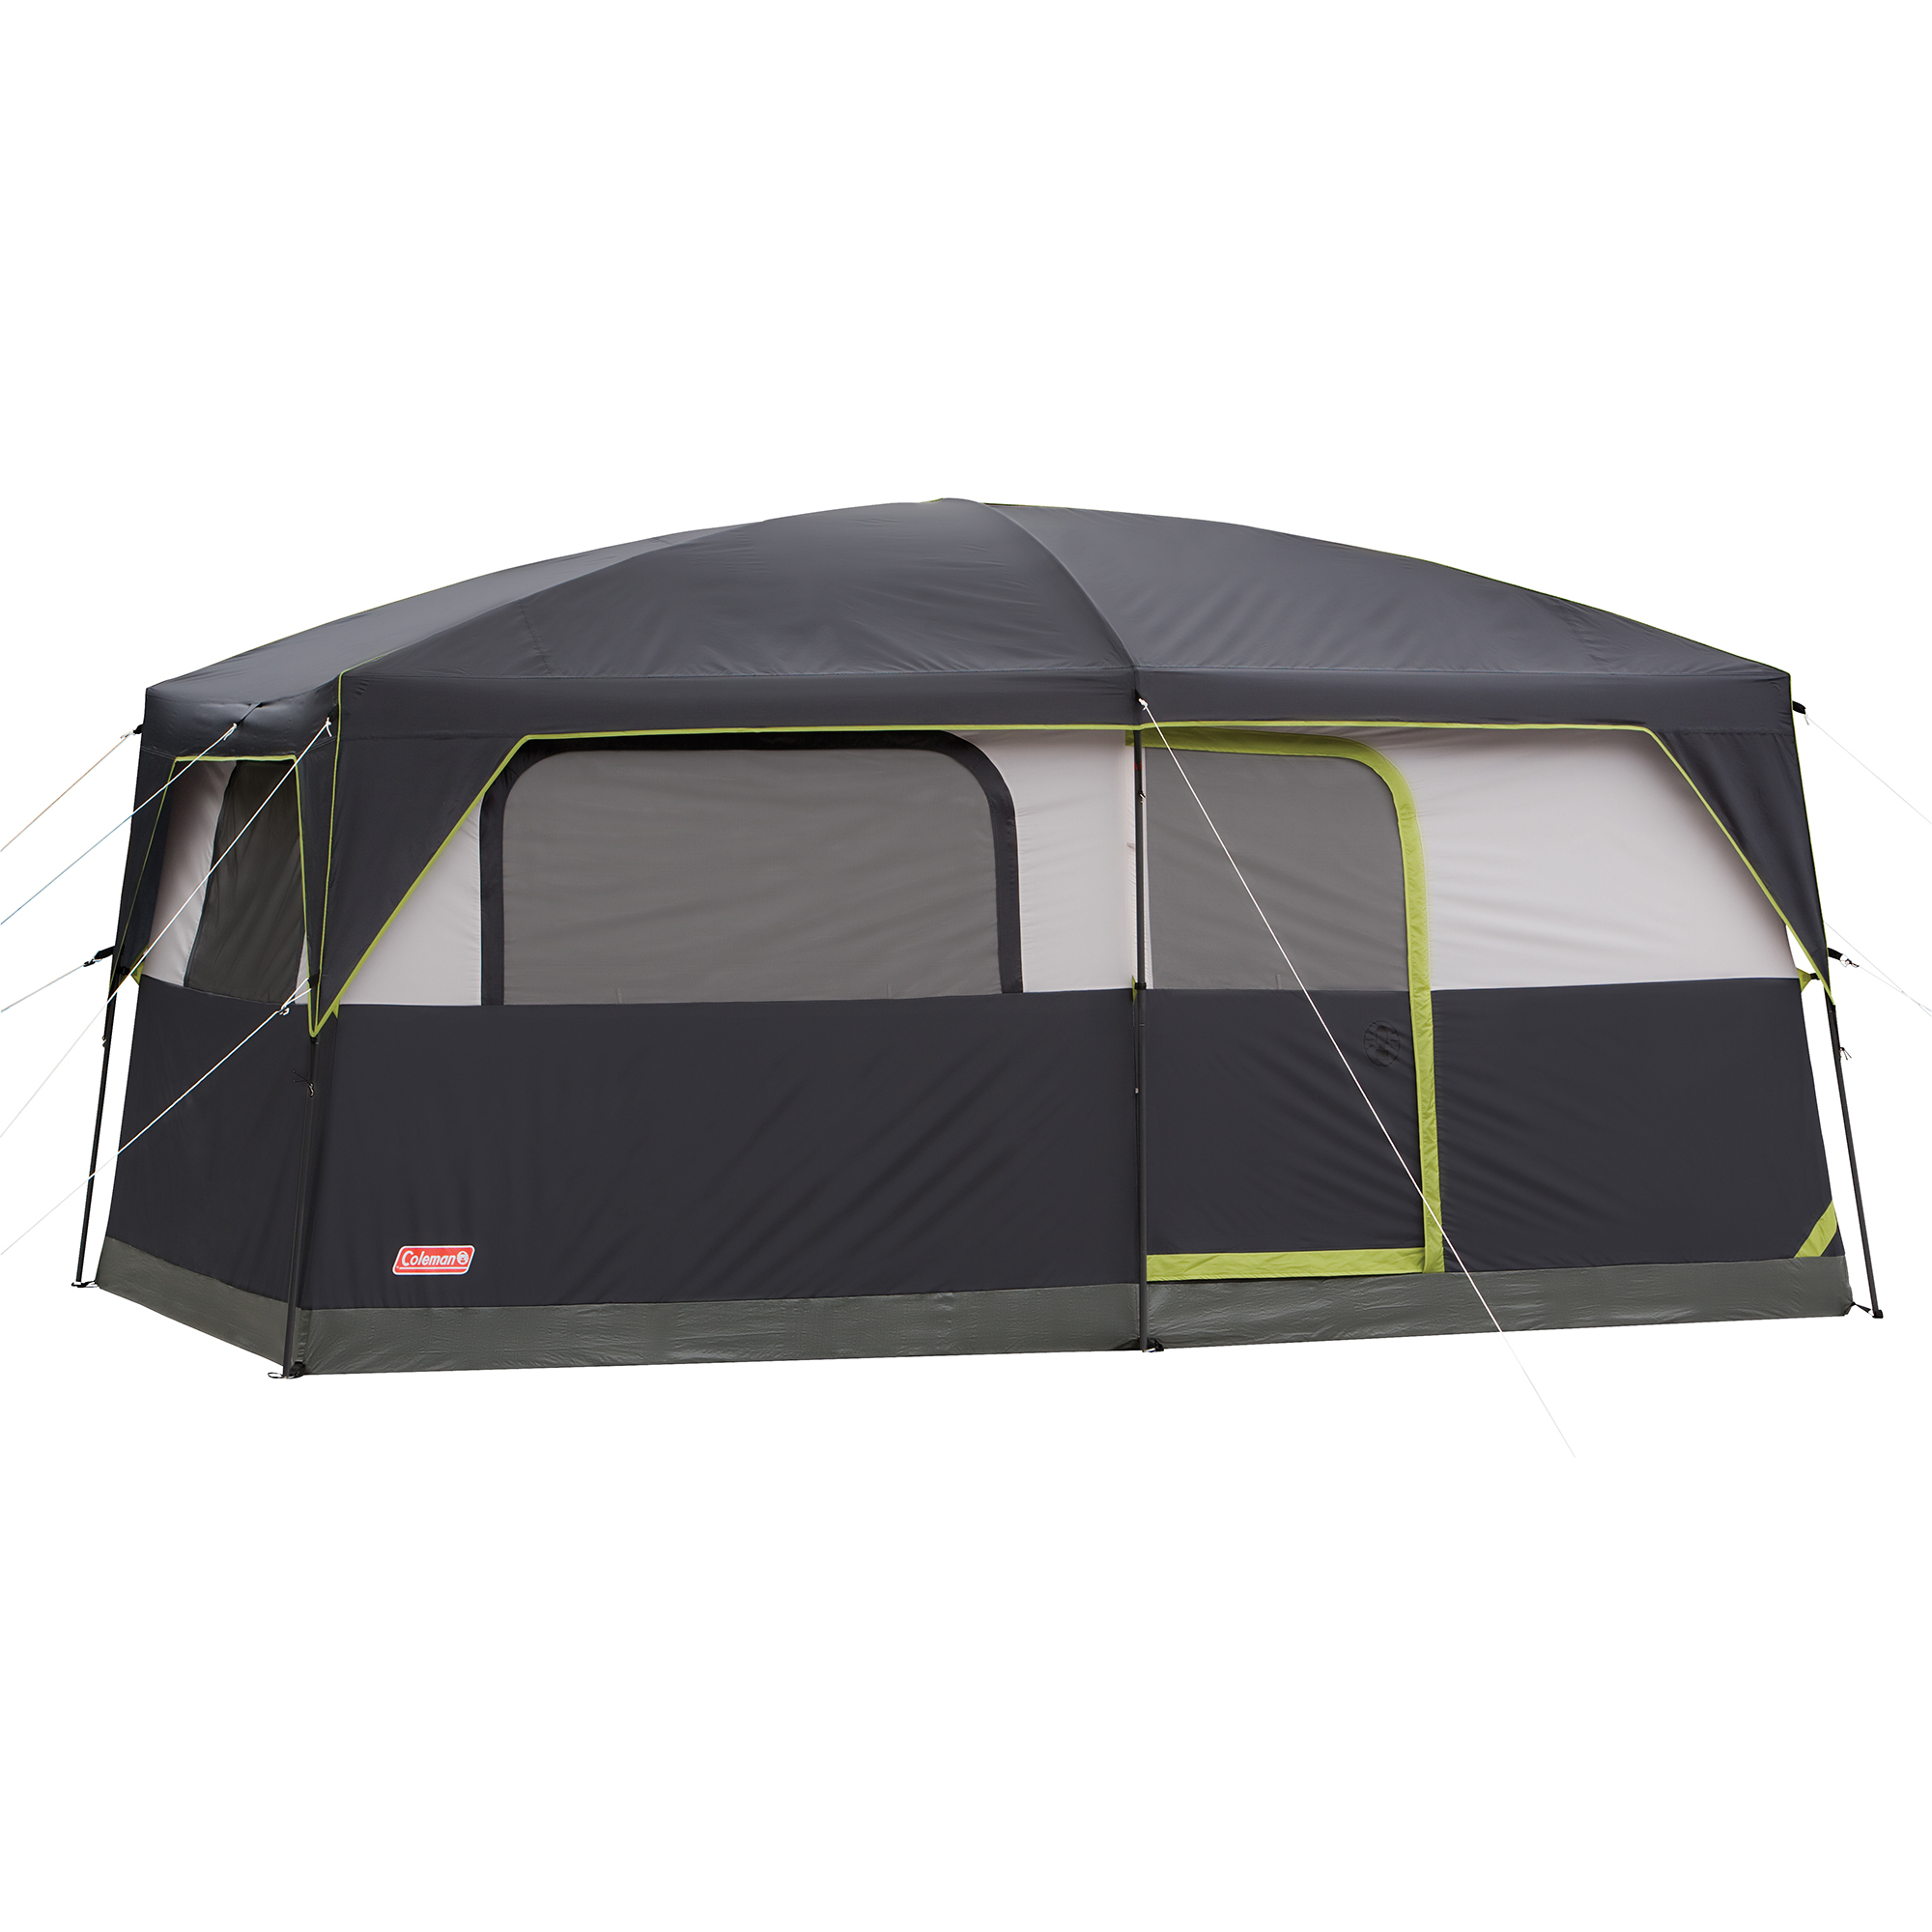 Coleman Prairie Breeze 8-Person Cabin Tent with Built-In LED Light and Integrated Fan by COLEMAN